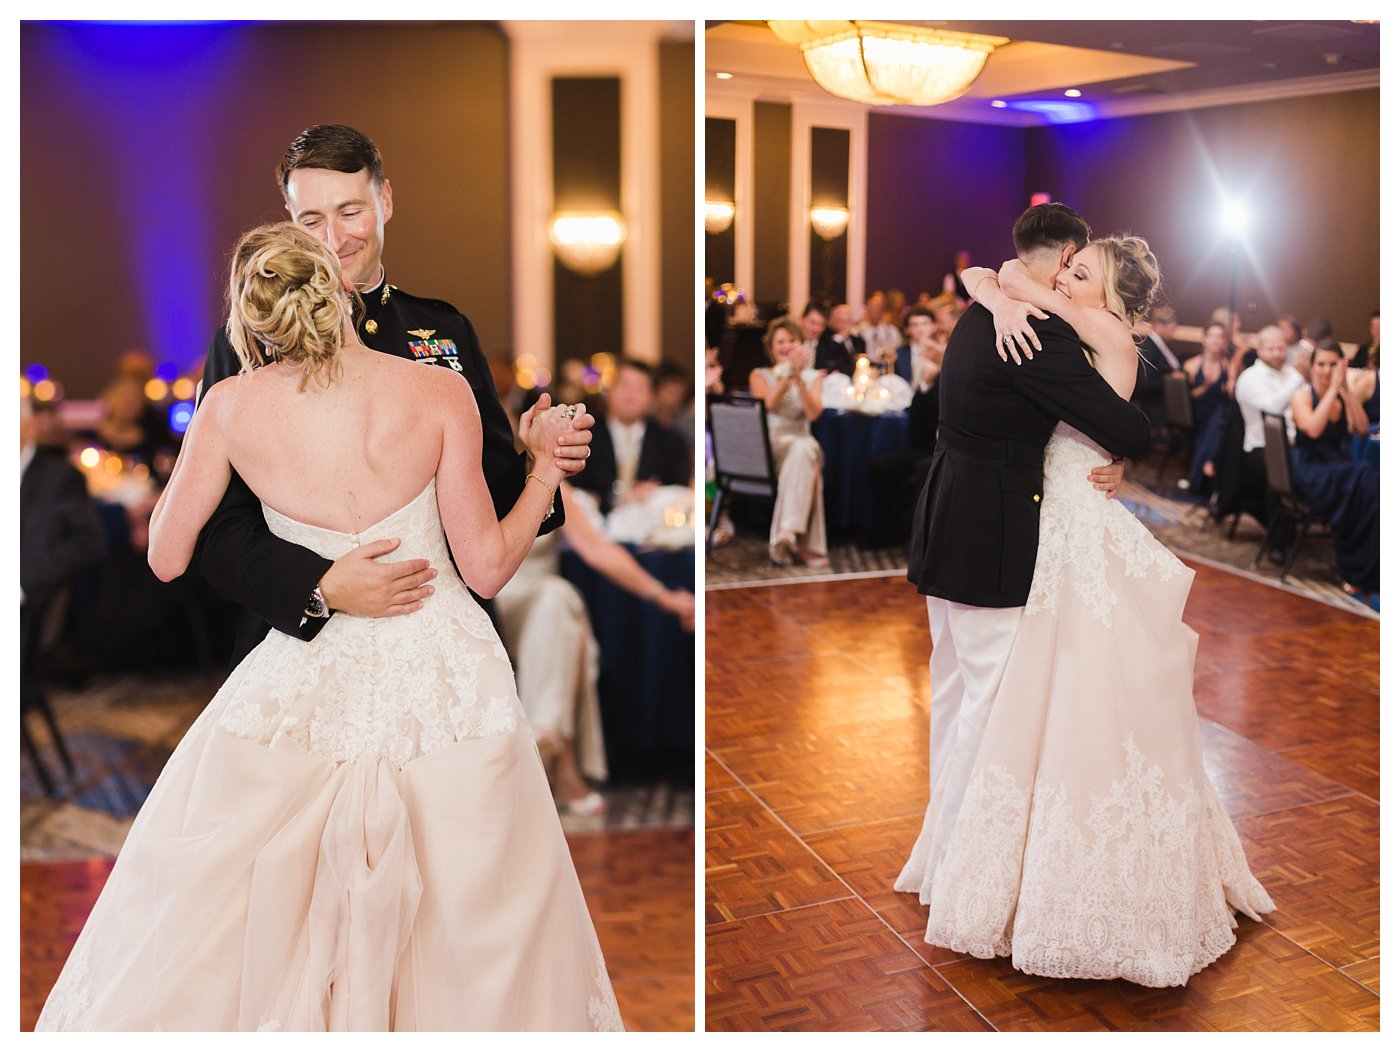 First Dances at the United States Naval Academy Wedding by Amanda and Grady Photography